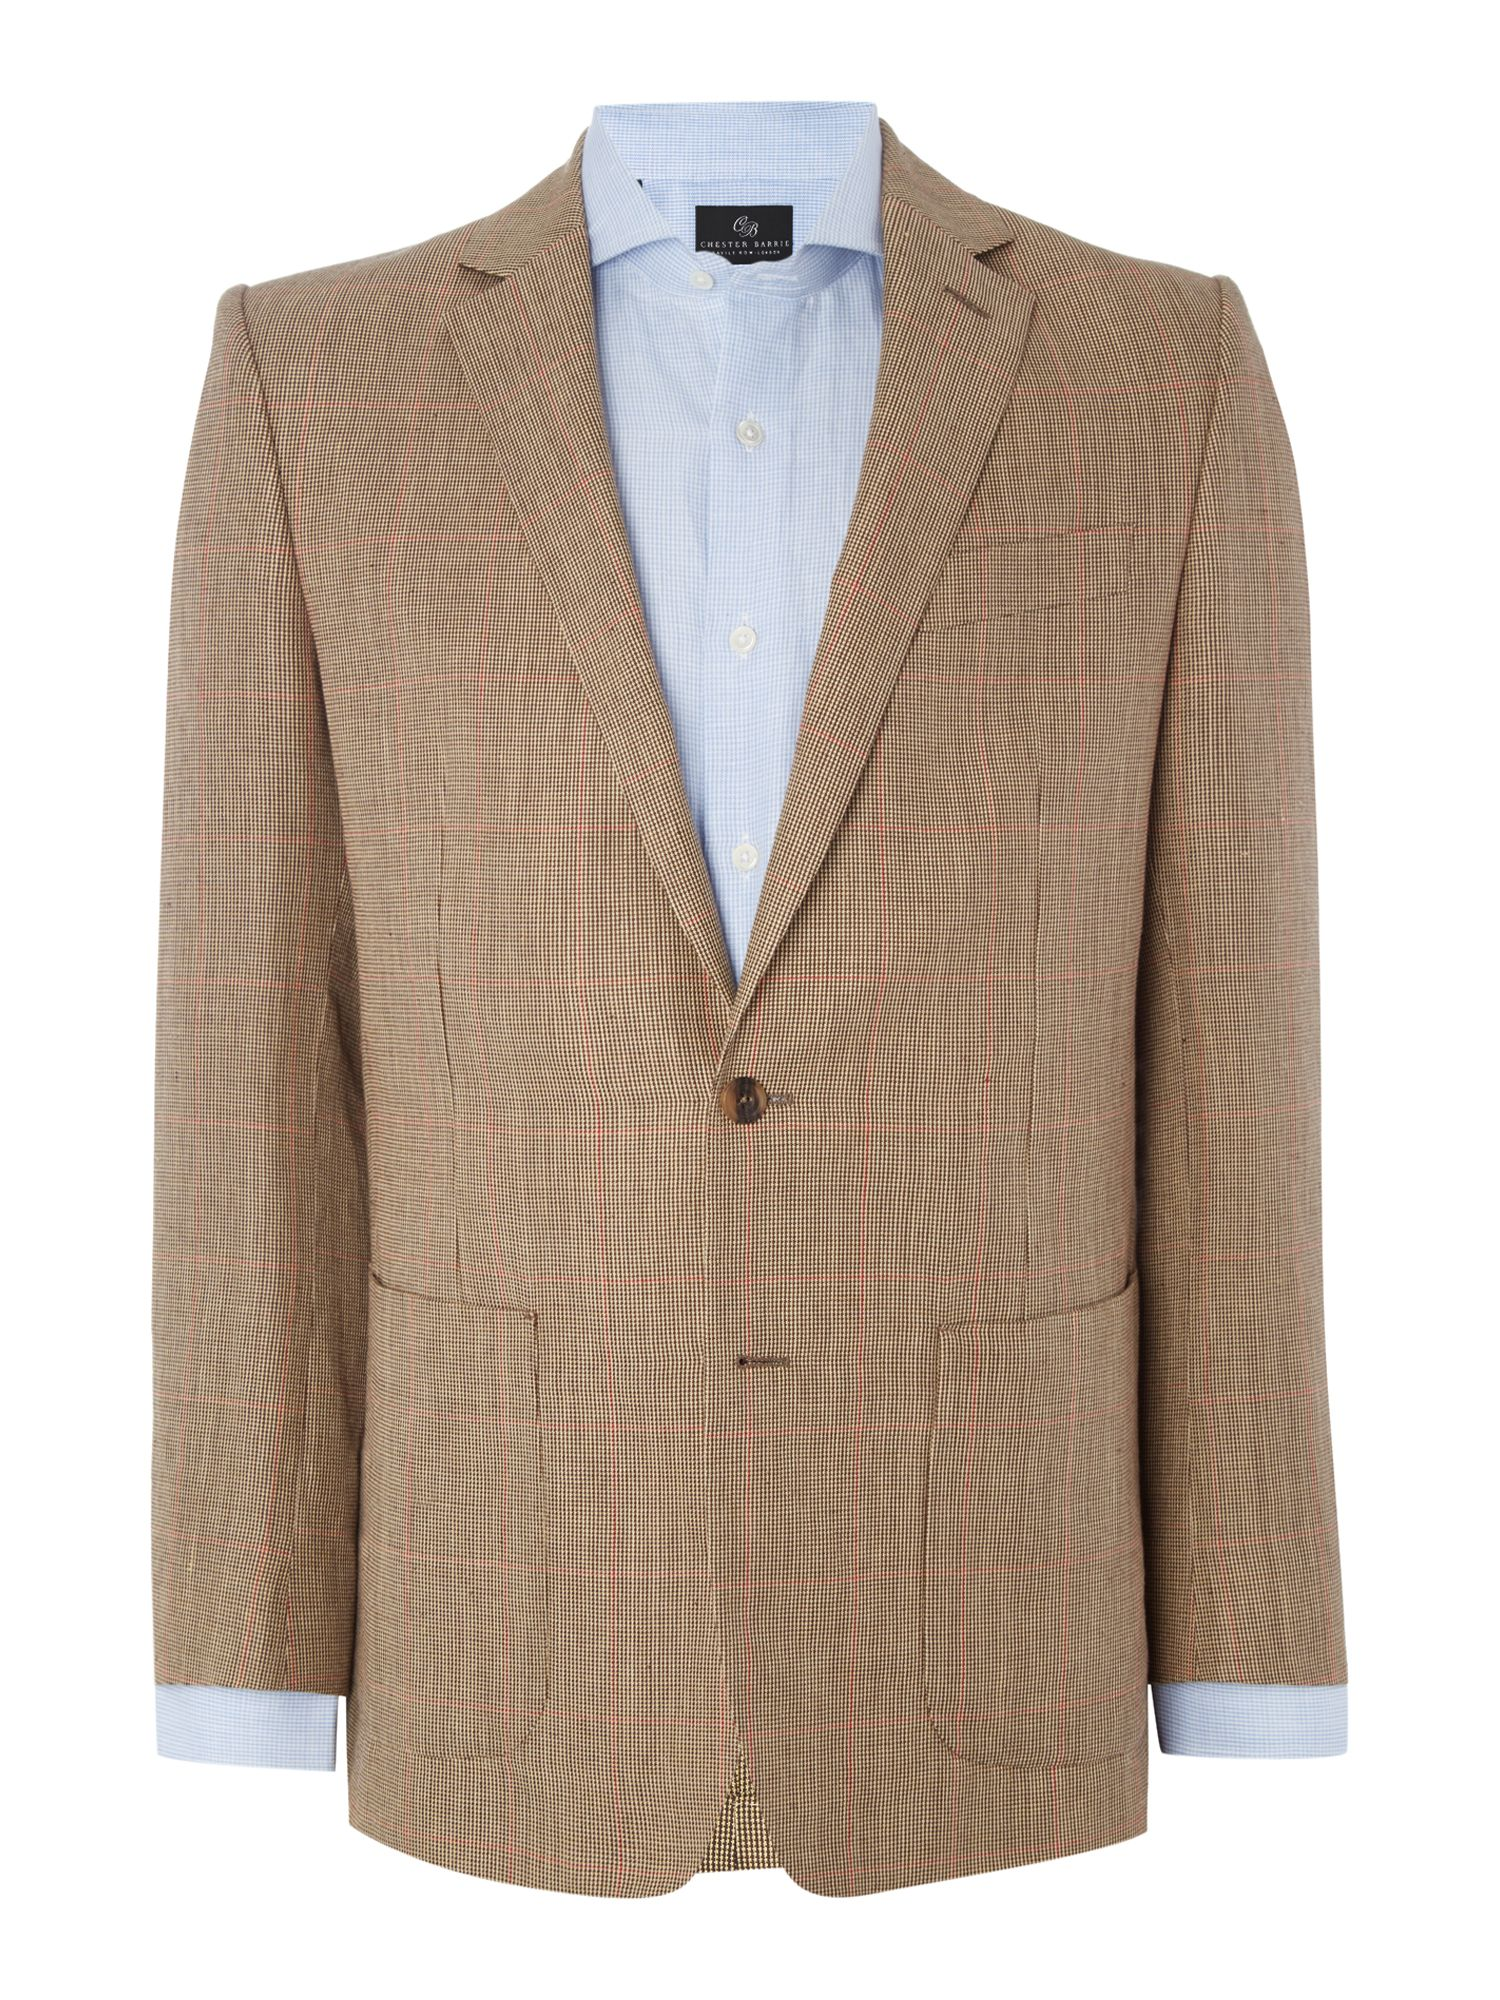 Chester Barrie Men's Chester Barrie Check Sports Jacket, Brown